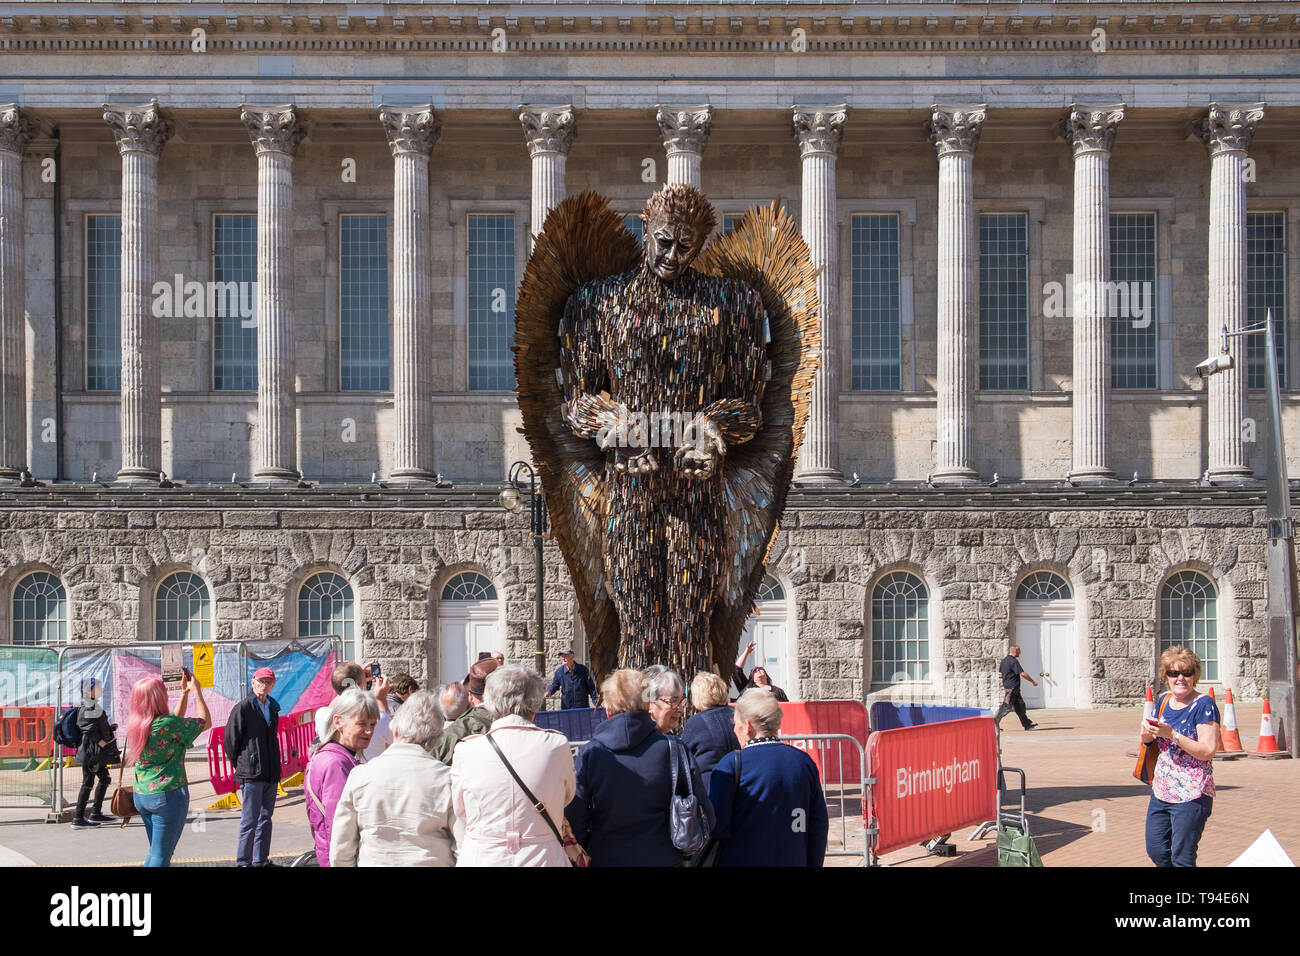 The Knife Angel sculpture by Alfie Bradley is made from thousands of surrendered knives and promotes the effect of knife crime on society. - Stock Image